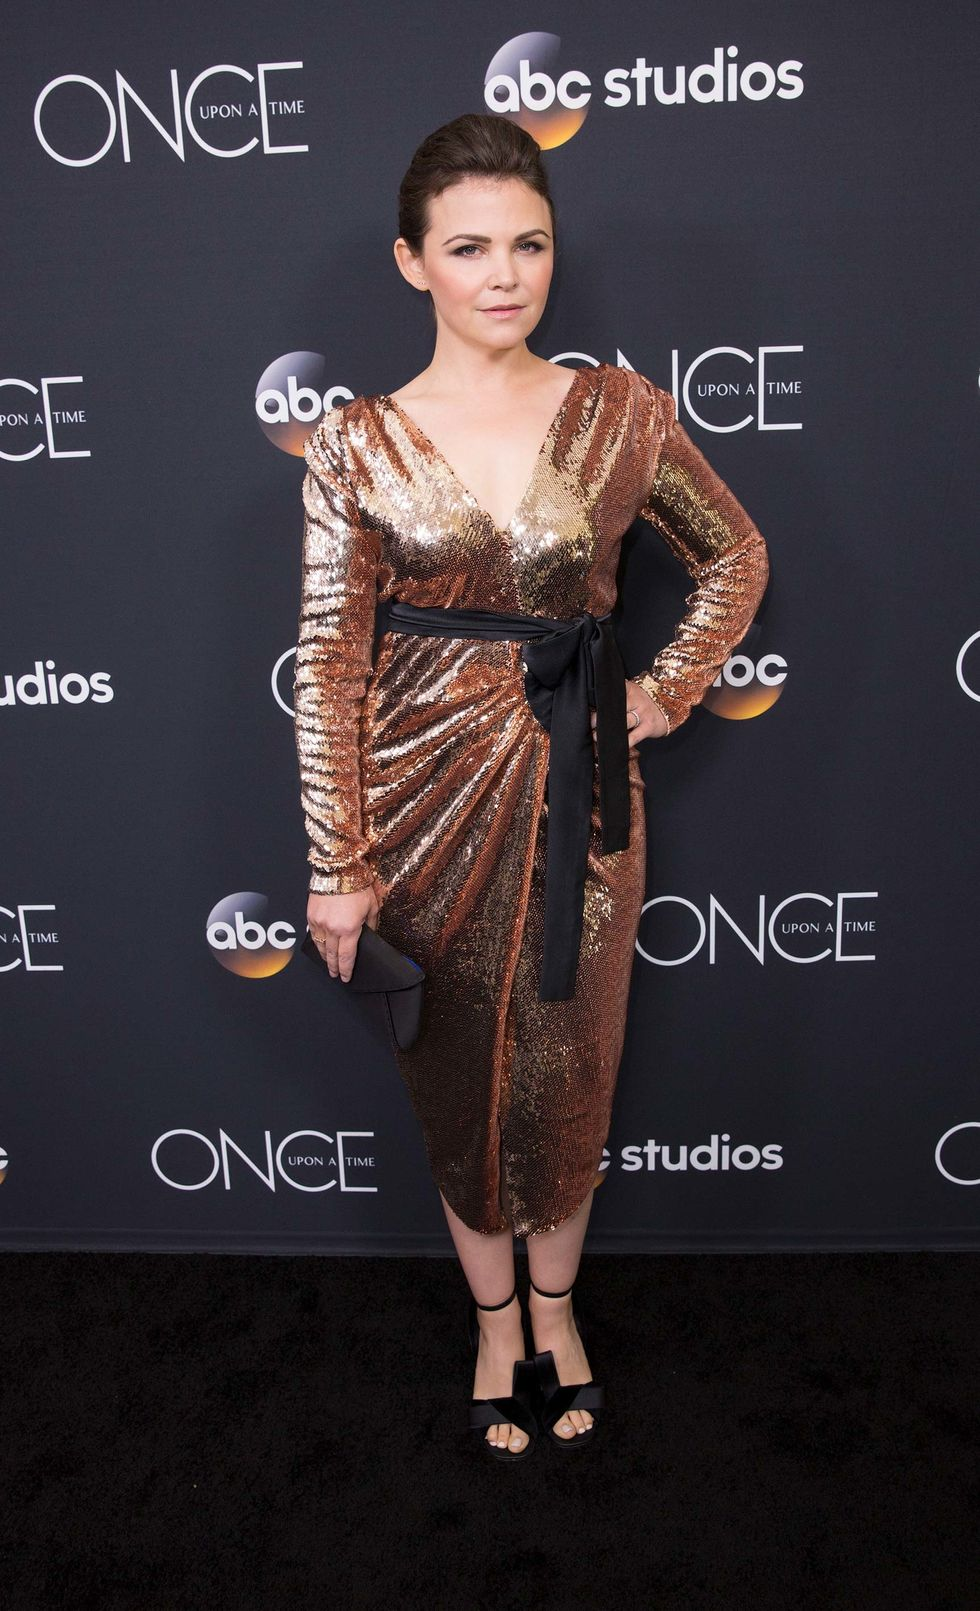 Ginnifer Goodwin in a sparkly gold dress.